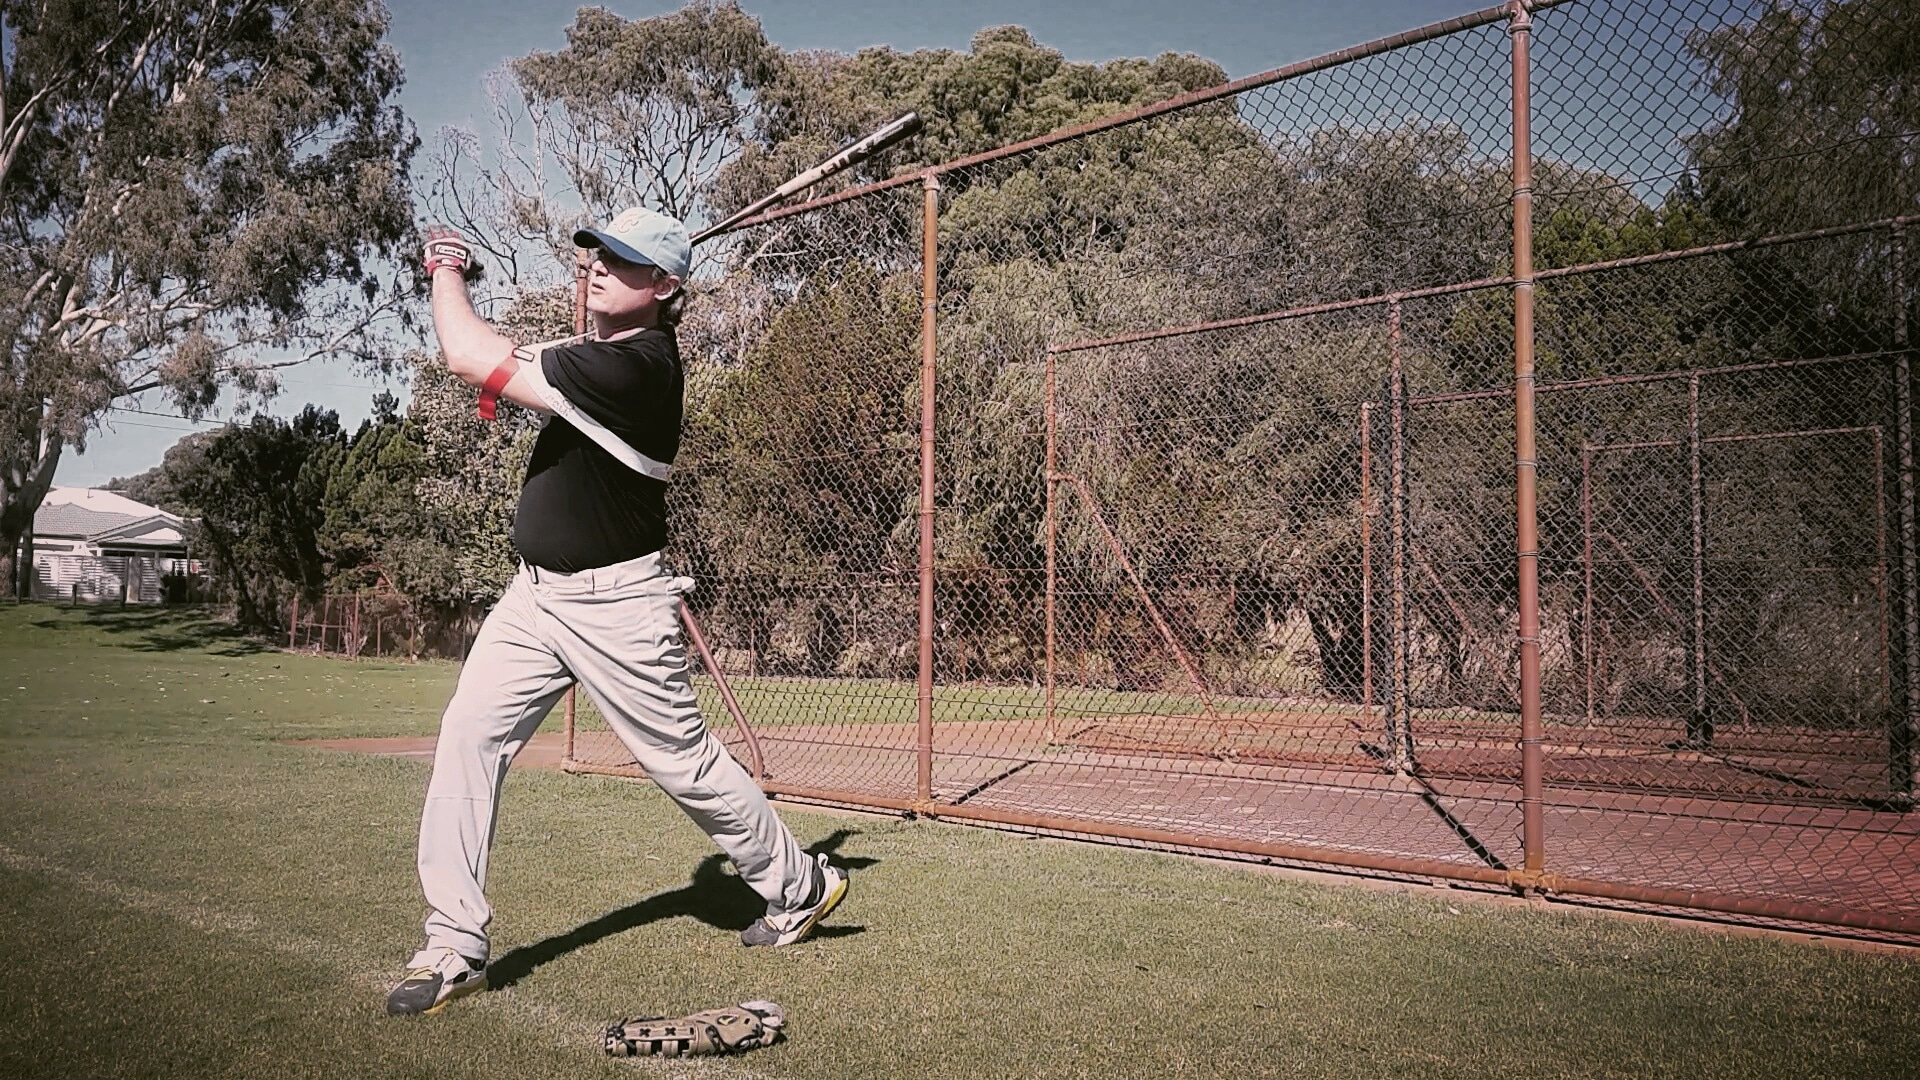 Exoprecise resistance increases strength and speed in your power baseball muscles, taking batting practice as usual, strengthening shoulders, back and abs